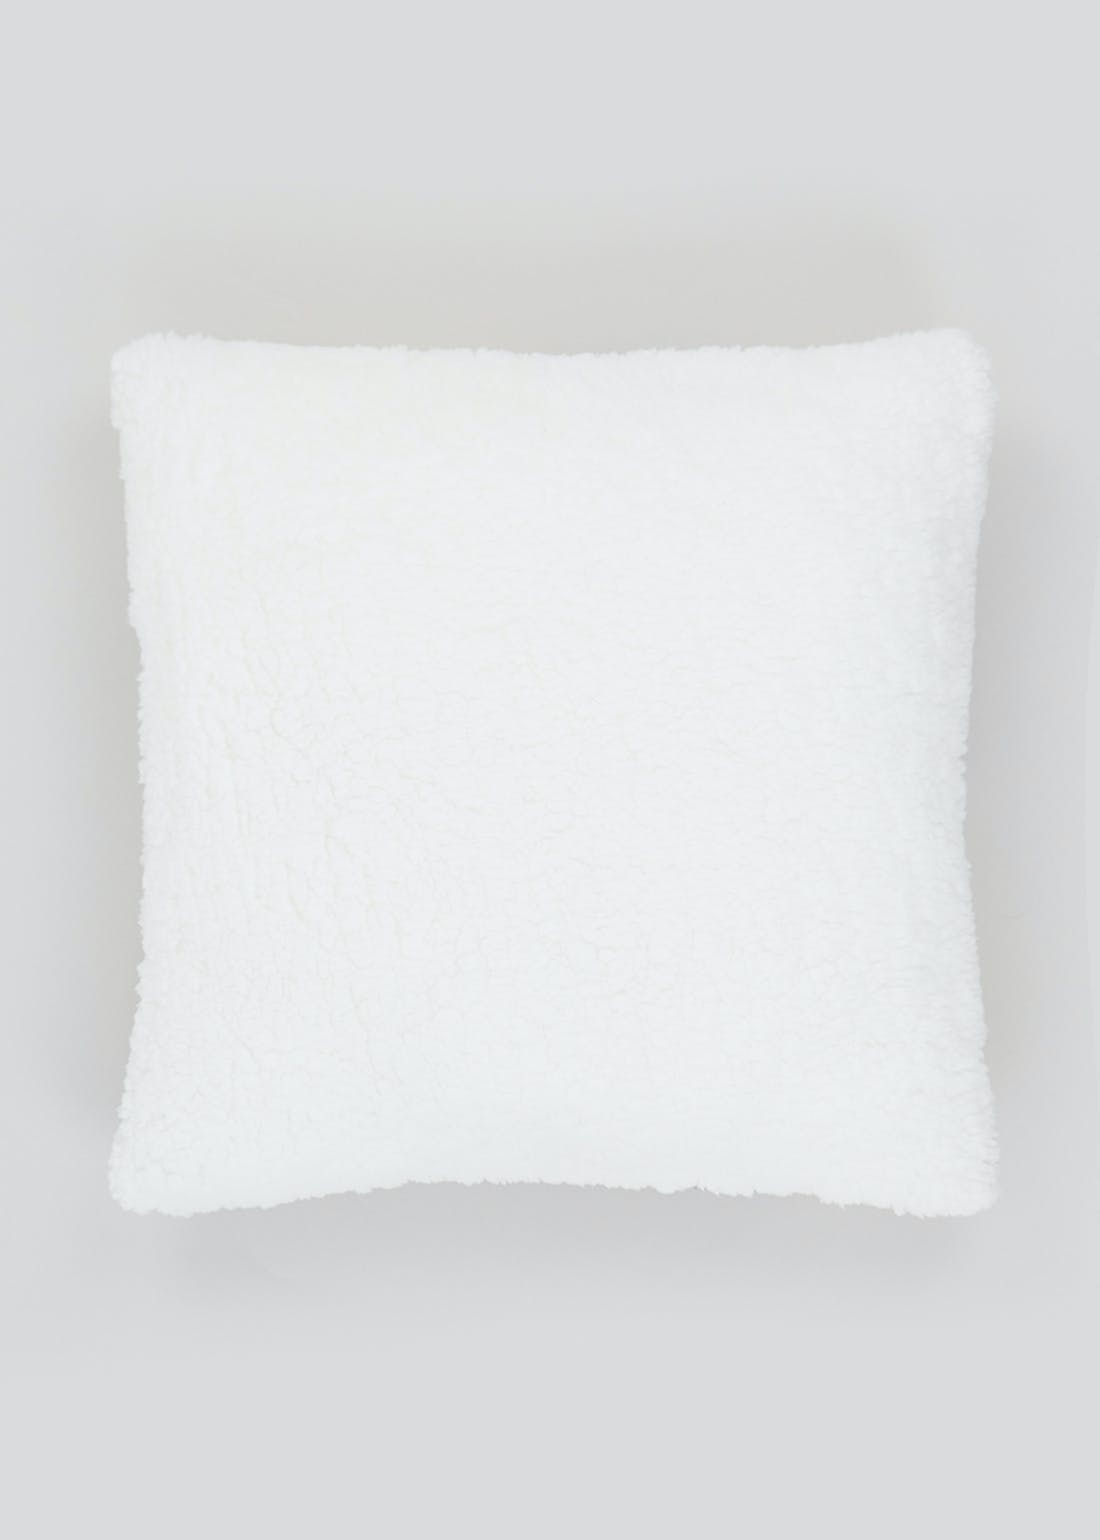 Check Sherpa Fleece Cushion (46cm x 46cm)